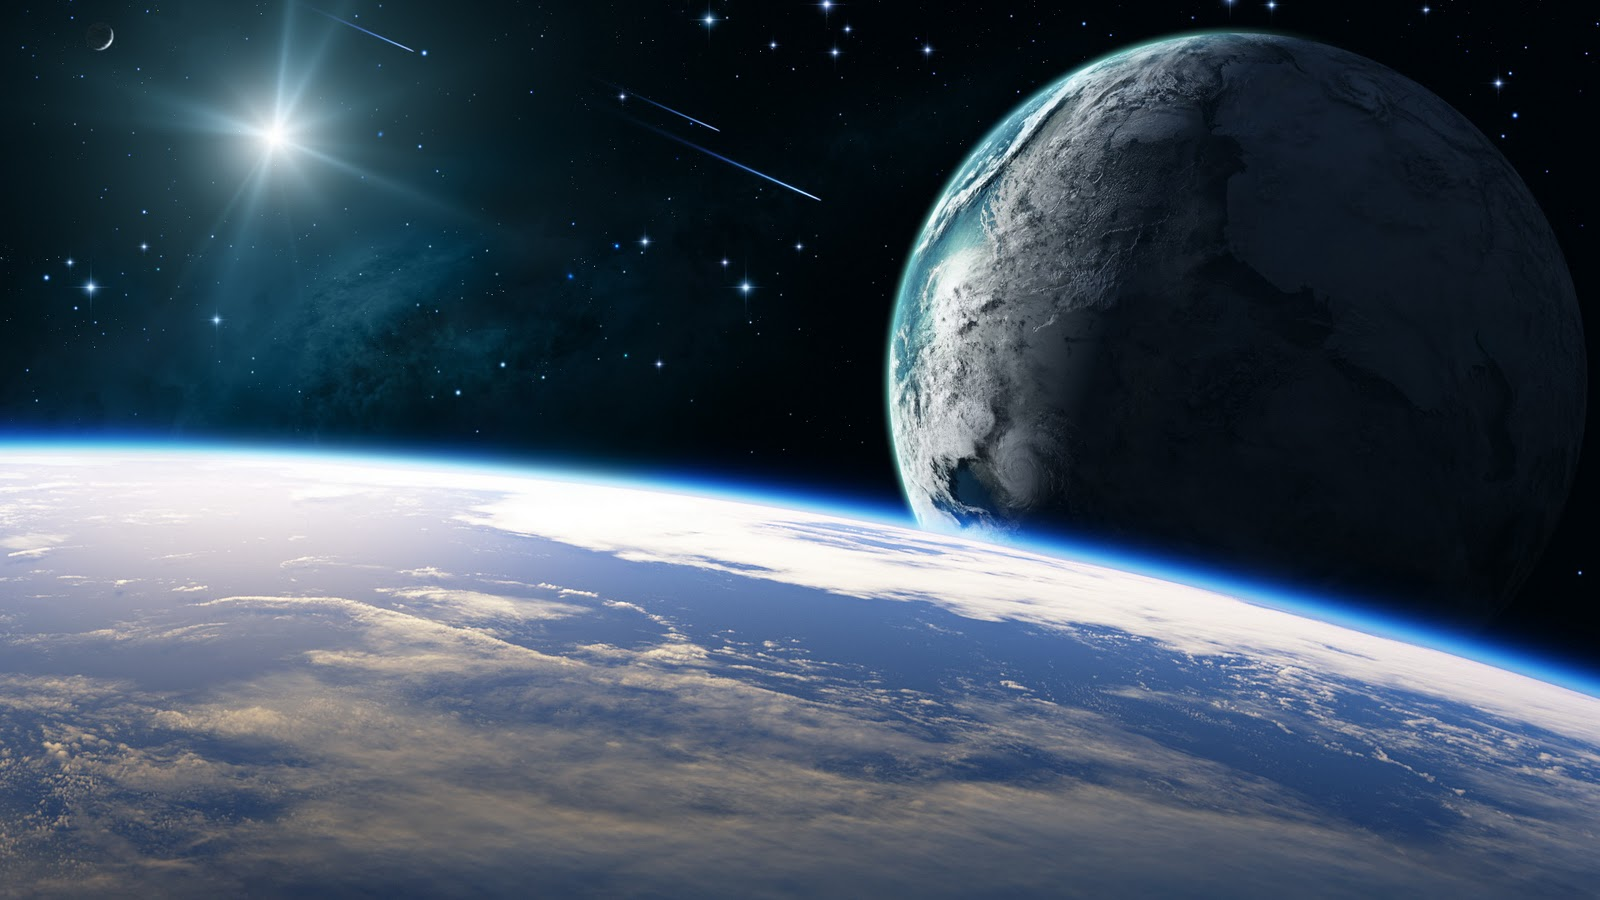 image from outer space hd wallpaper 2012 download wallpapers 1600x900